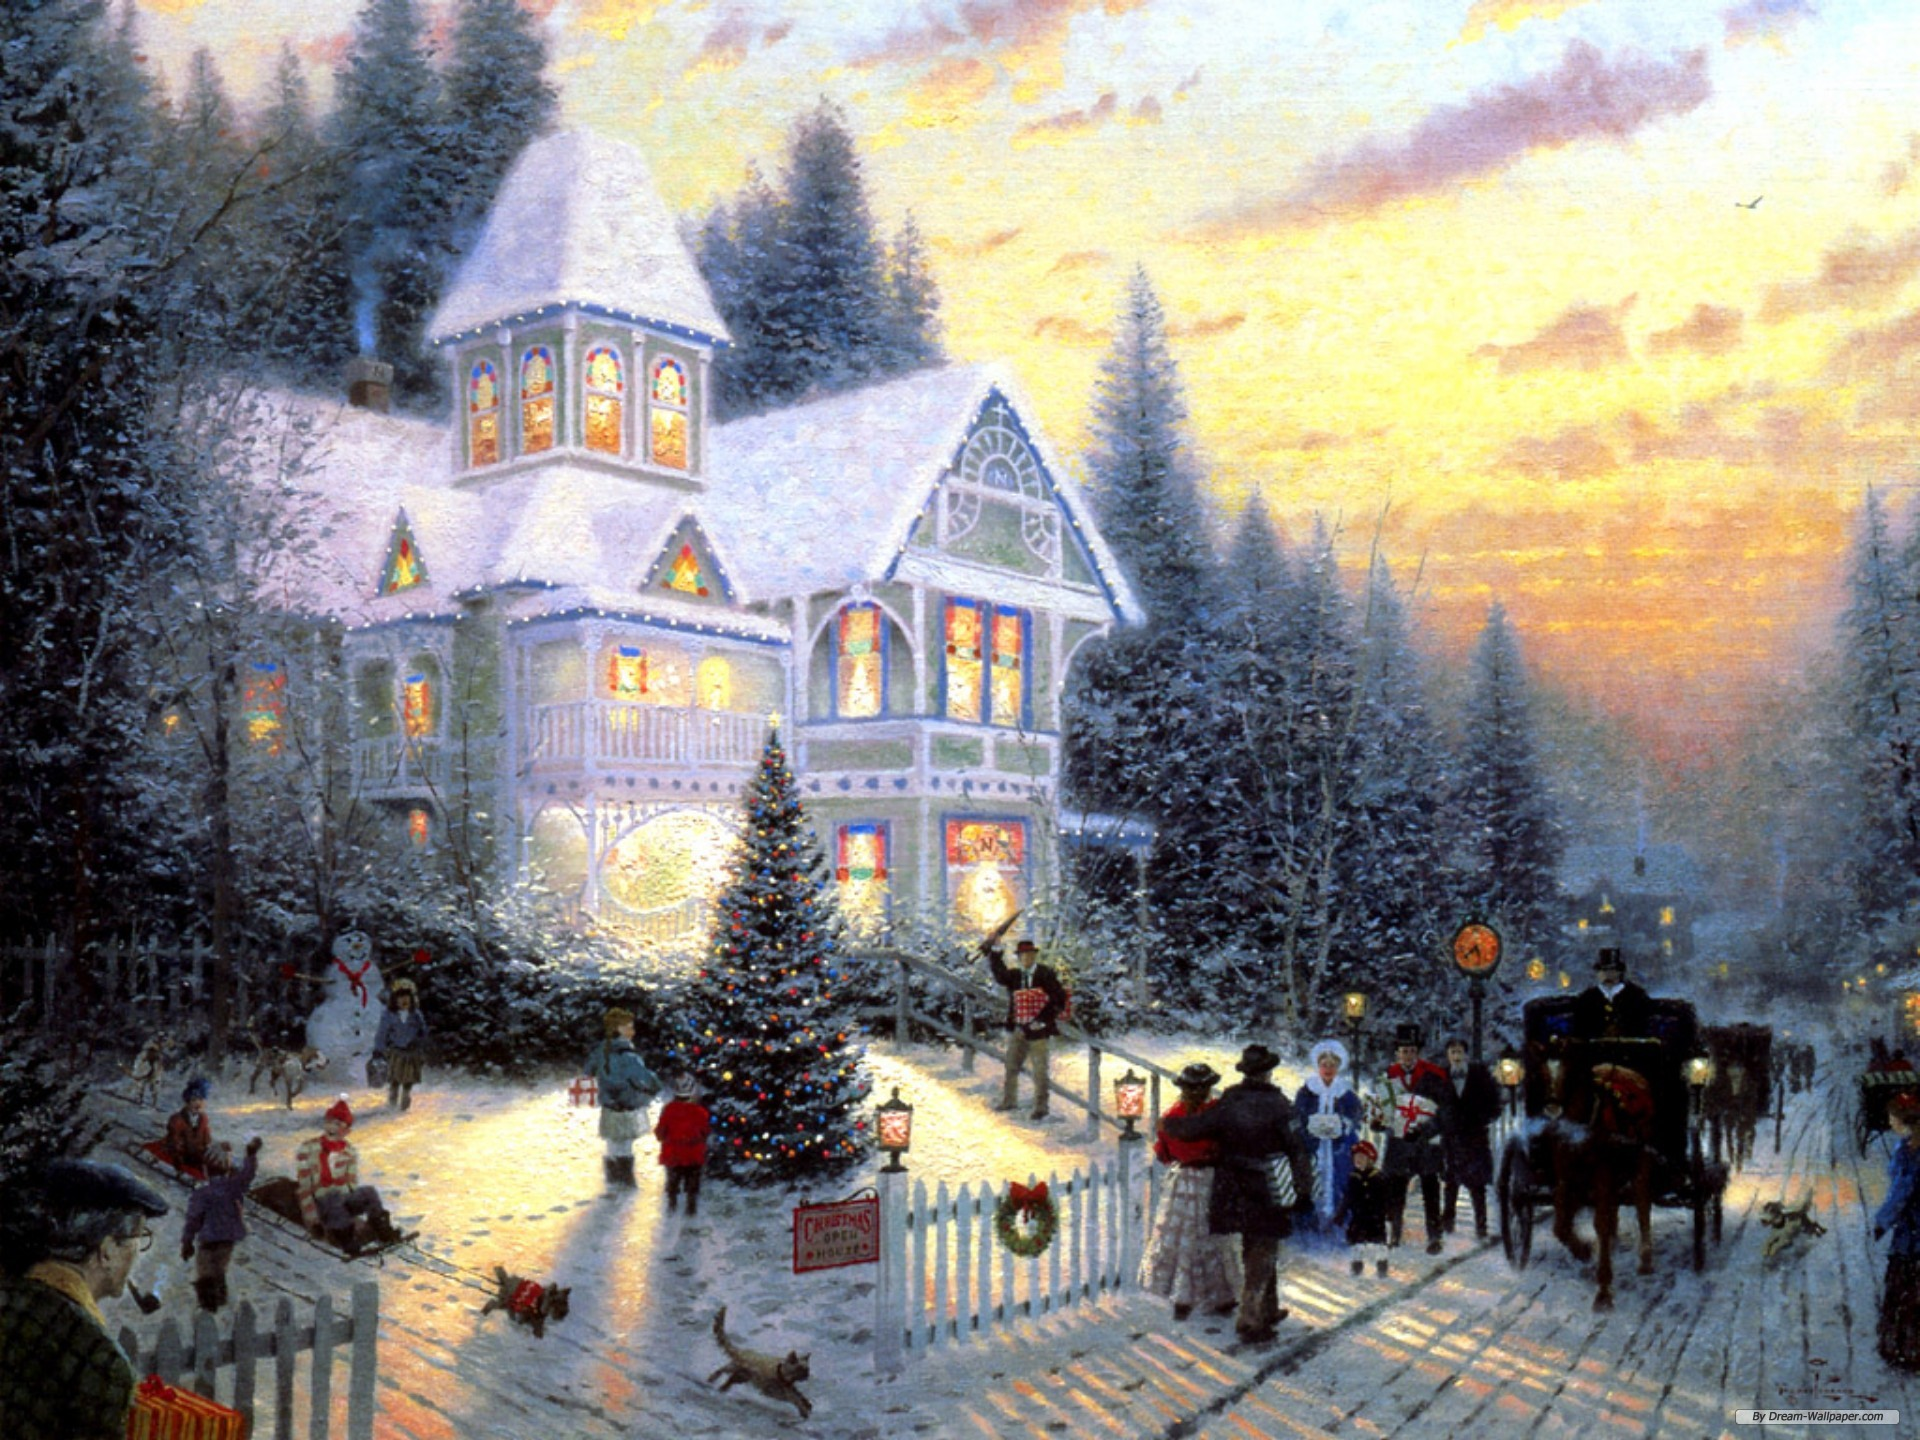 ... holiday-wallpaper/christmas-eve-painting-wallpaper/1920x1440/free